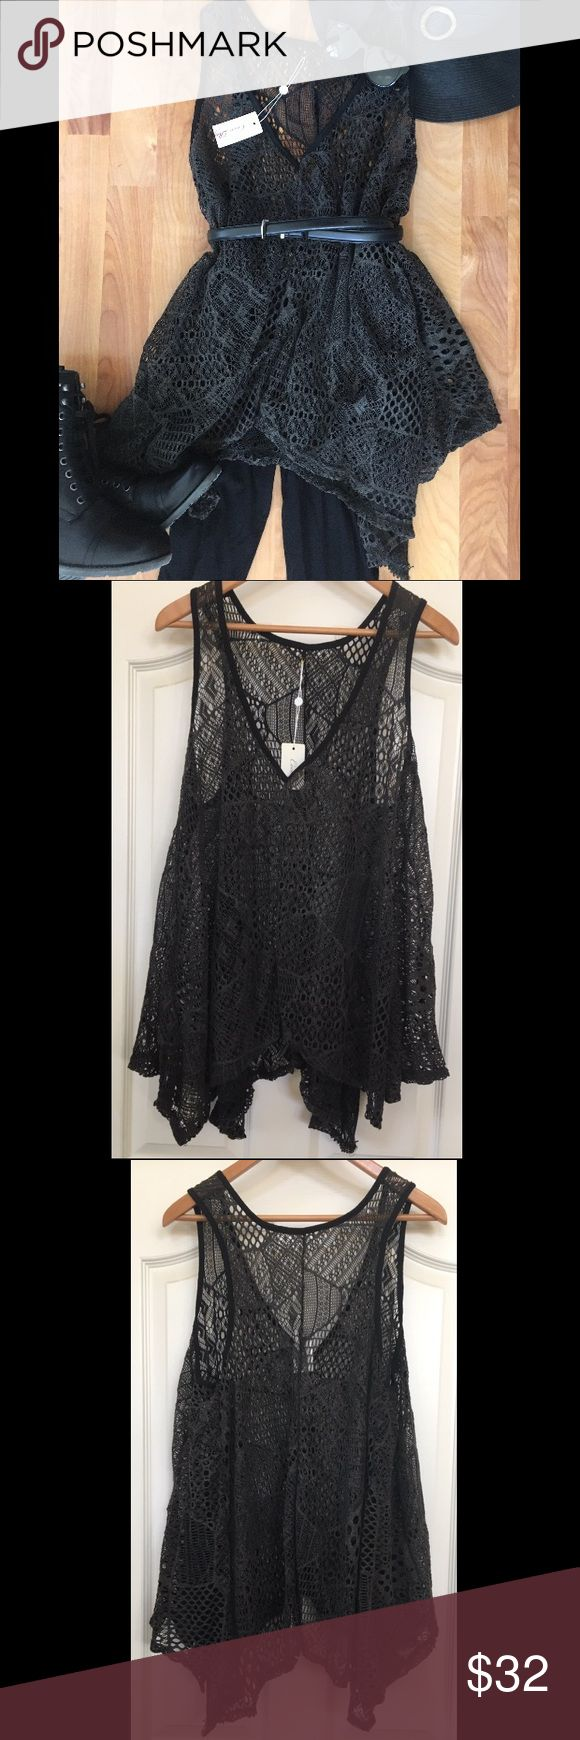 Filigree Boutique Tunic Tank Top from Coco Roja, bought from a little boutique. NWT, although the tag was cut in half. Perfect condition! This sheer flowy tank looks amazing with a belt and leggings. Very unique fabric, has a crochet lacework effect with varying patters throughout the top. The threads are black with grey entangled in. Fits M, L, and a smaller XL. Coco Roja Tops Tunics